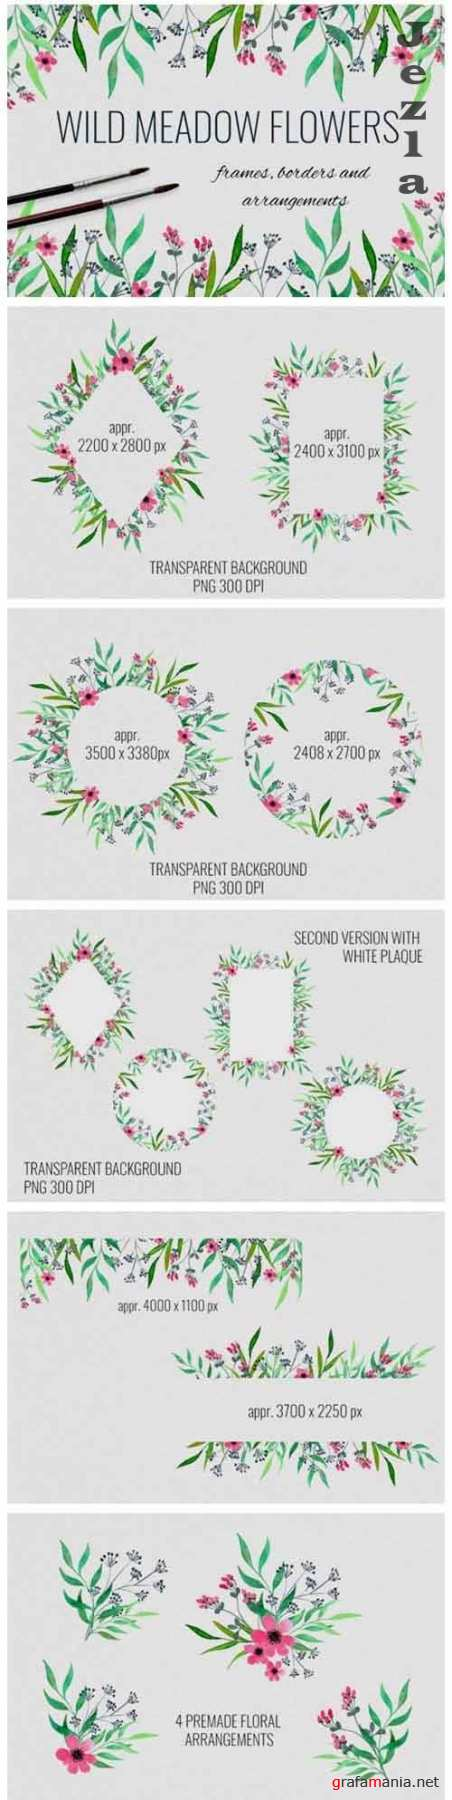 Wild meadow flowers frames, borders and arrangements - 644392